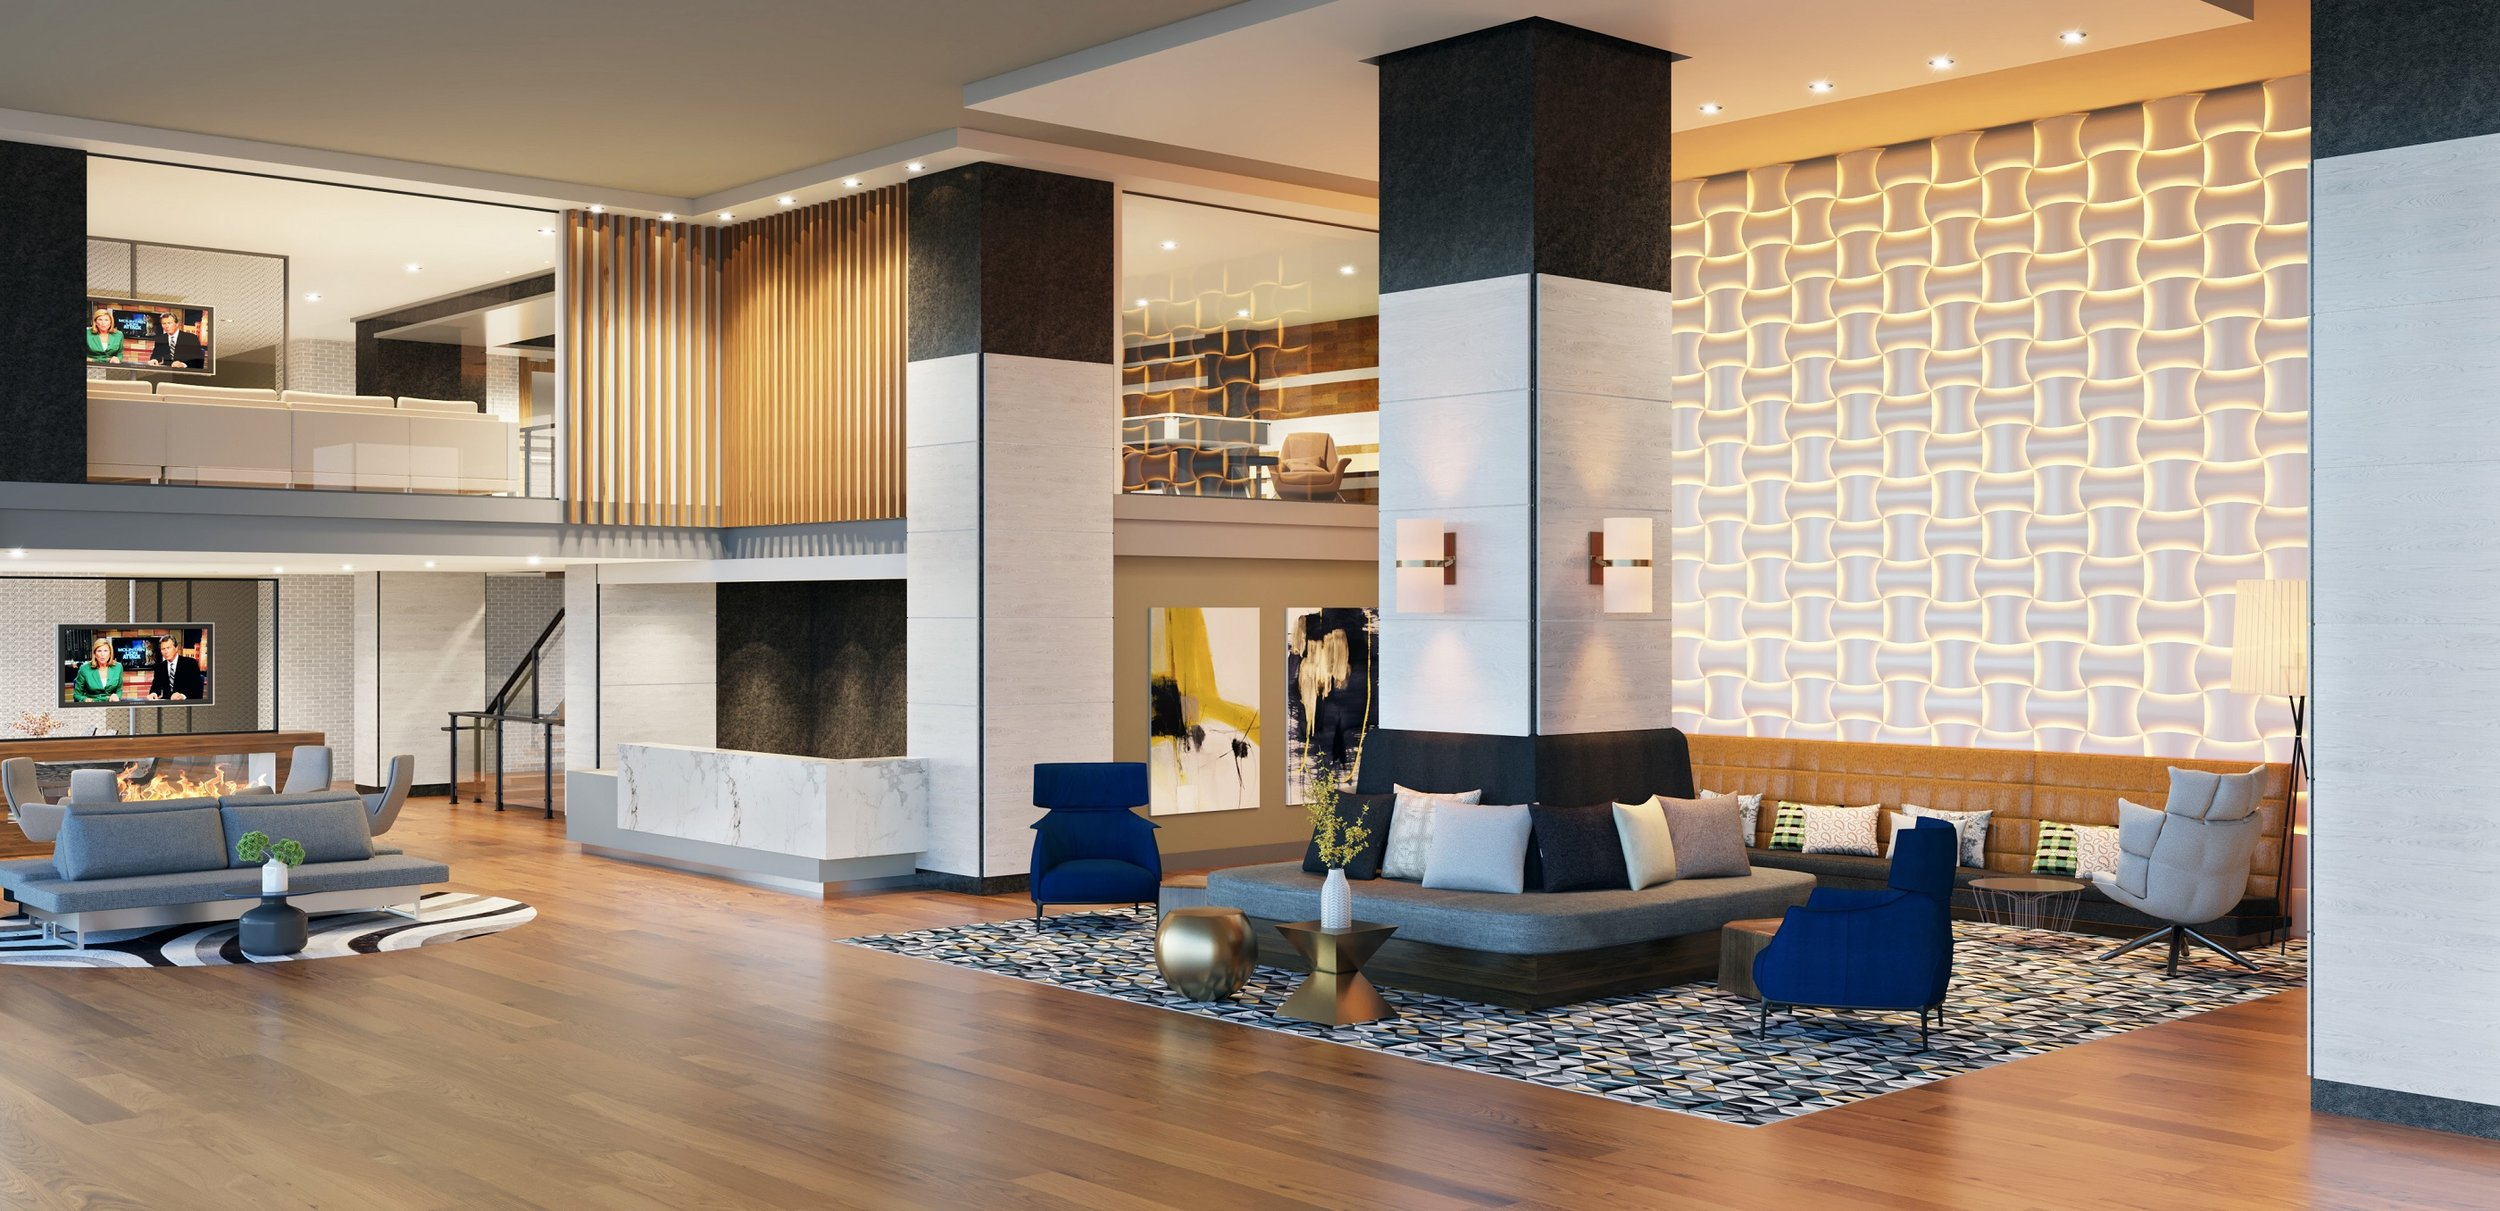 SoHo Lofts Launches Leasing As Newest Phase of SoHo West Opens In Jersey City